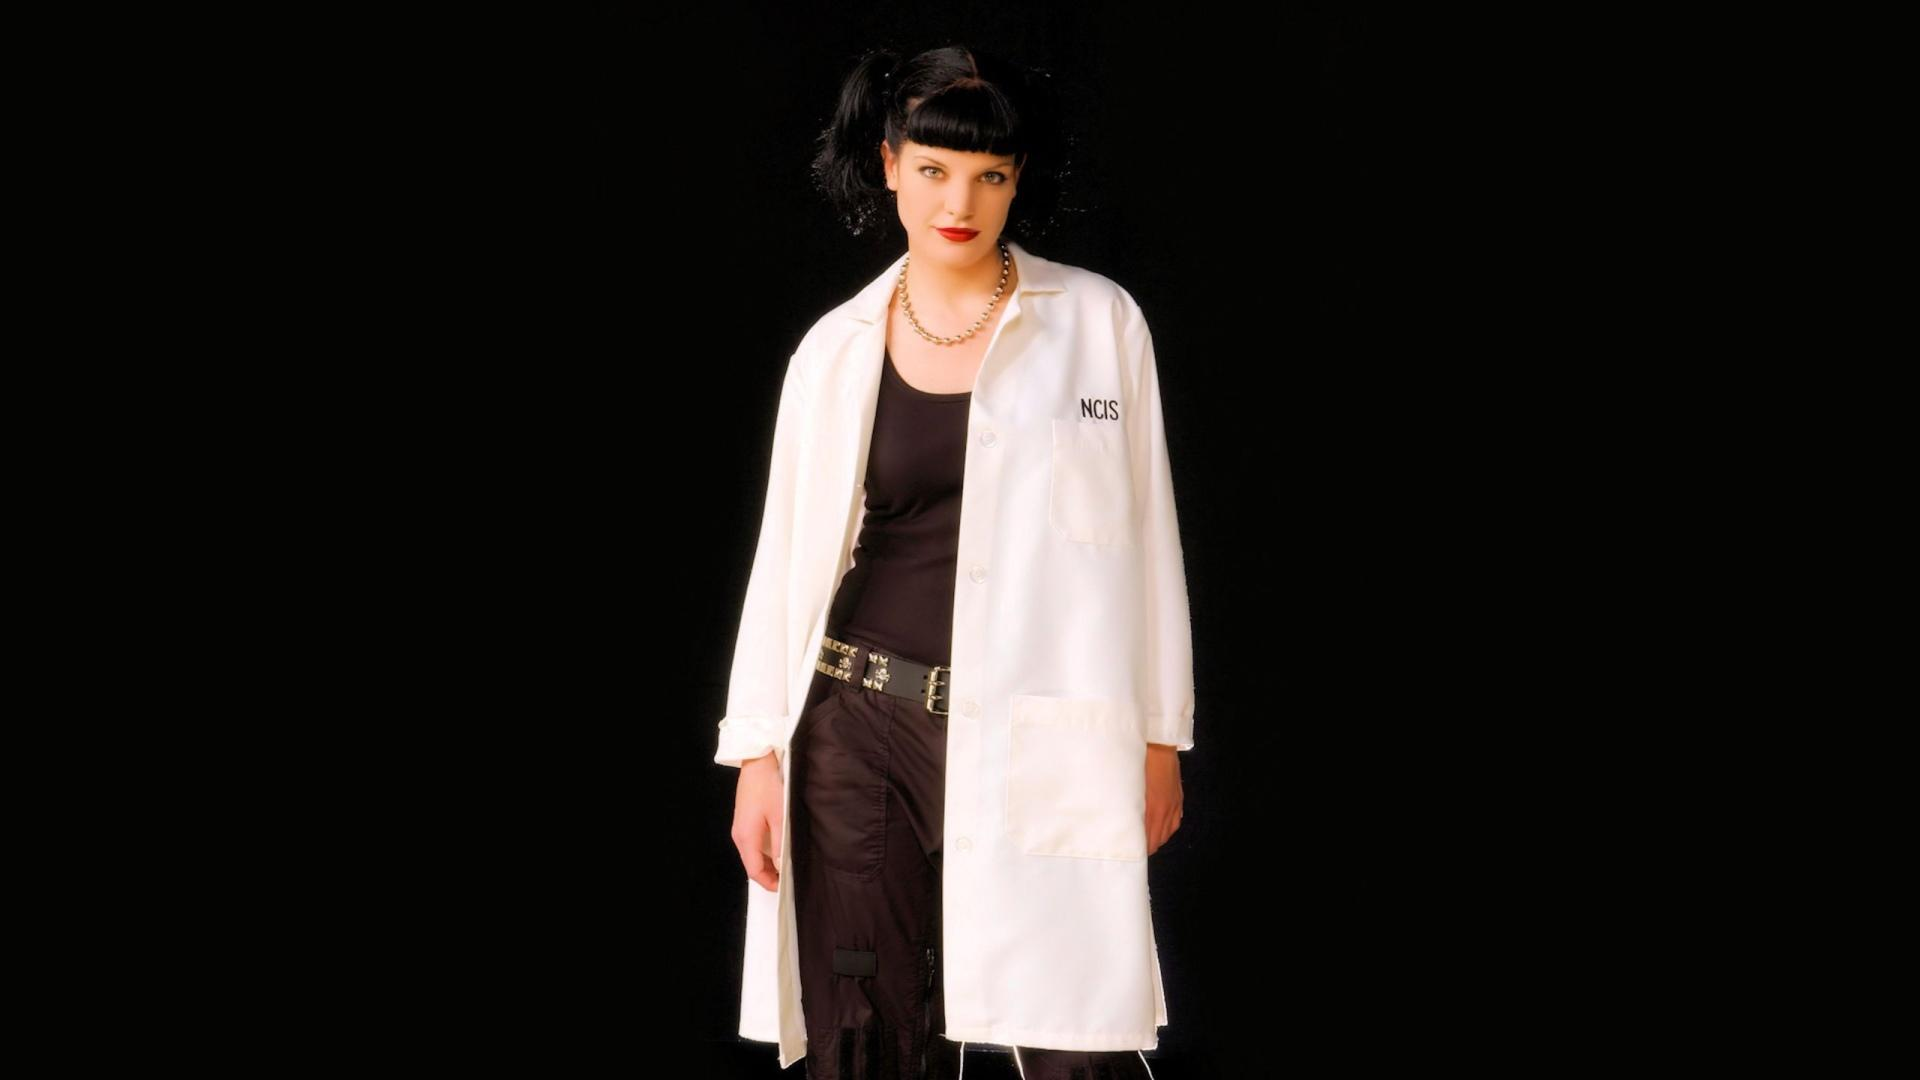 NCIS wallpapers HD quality